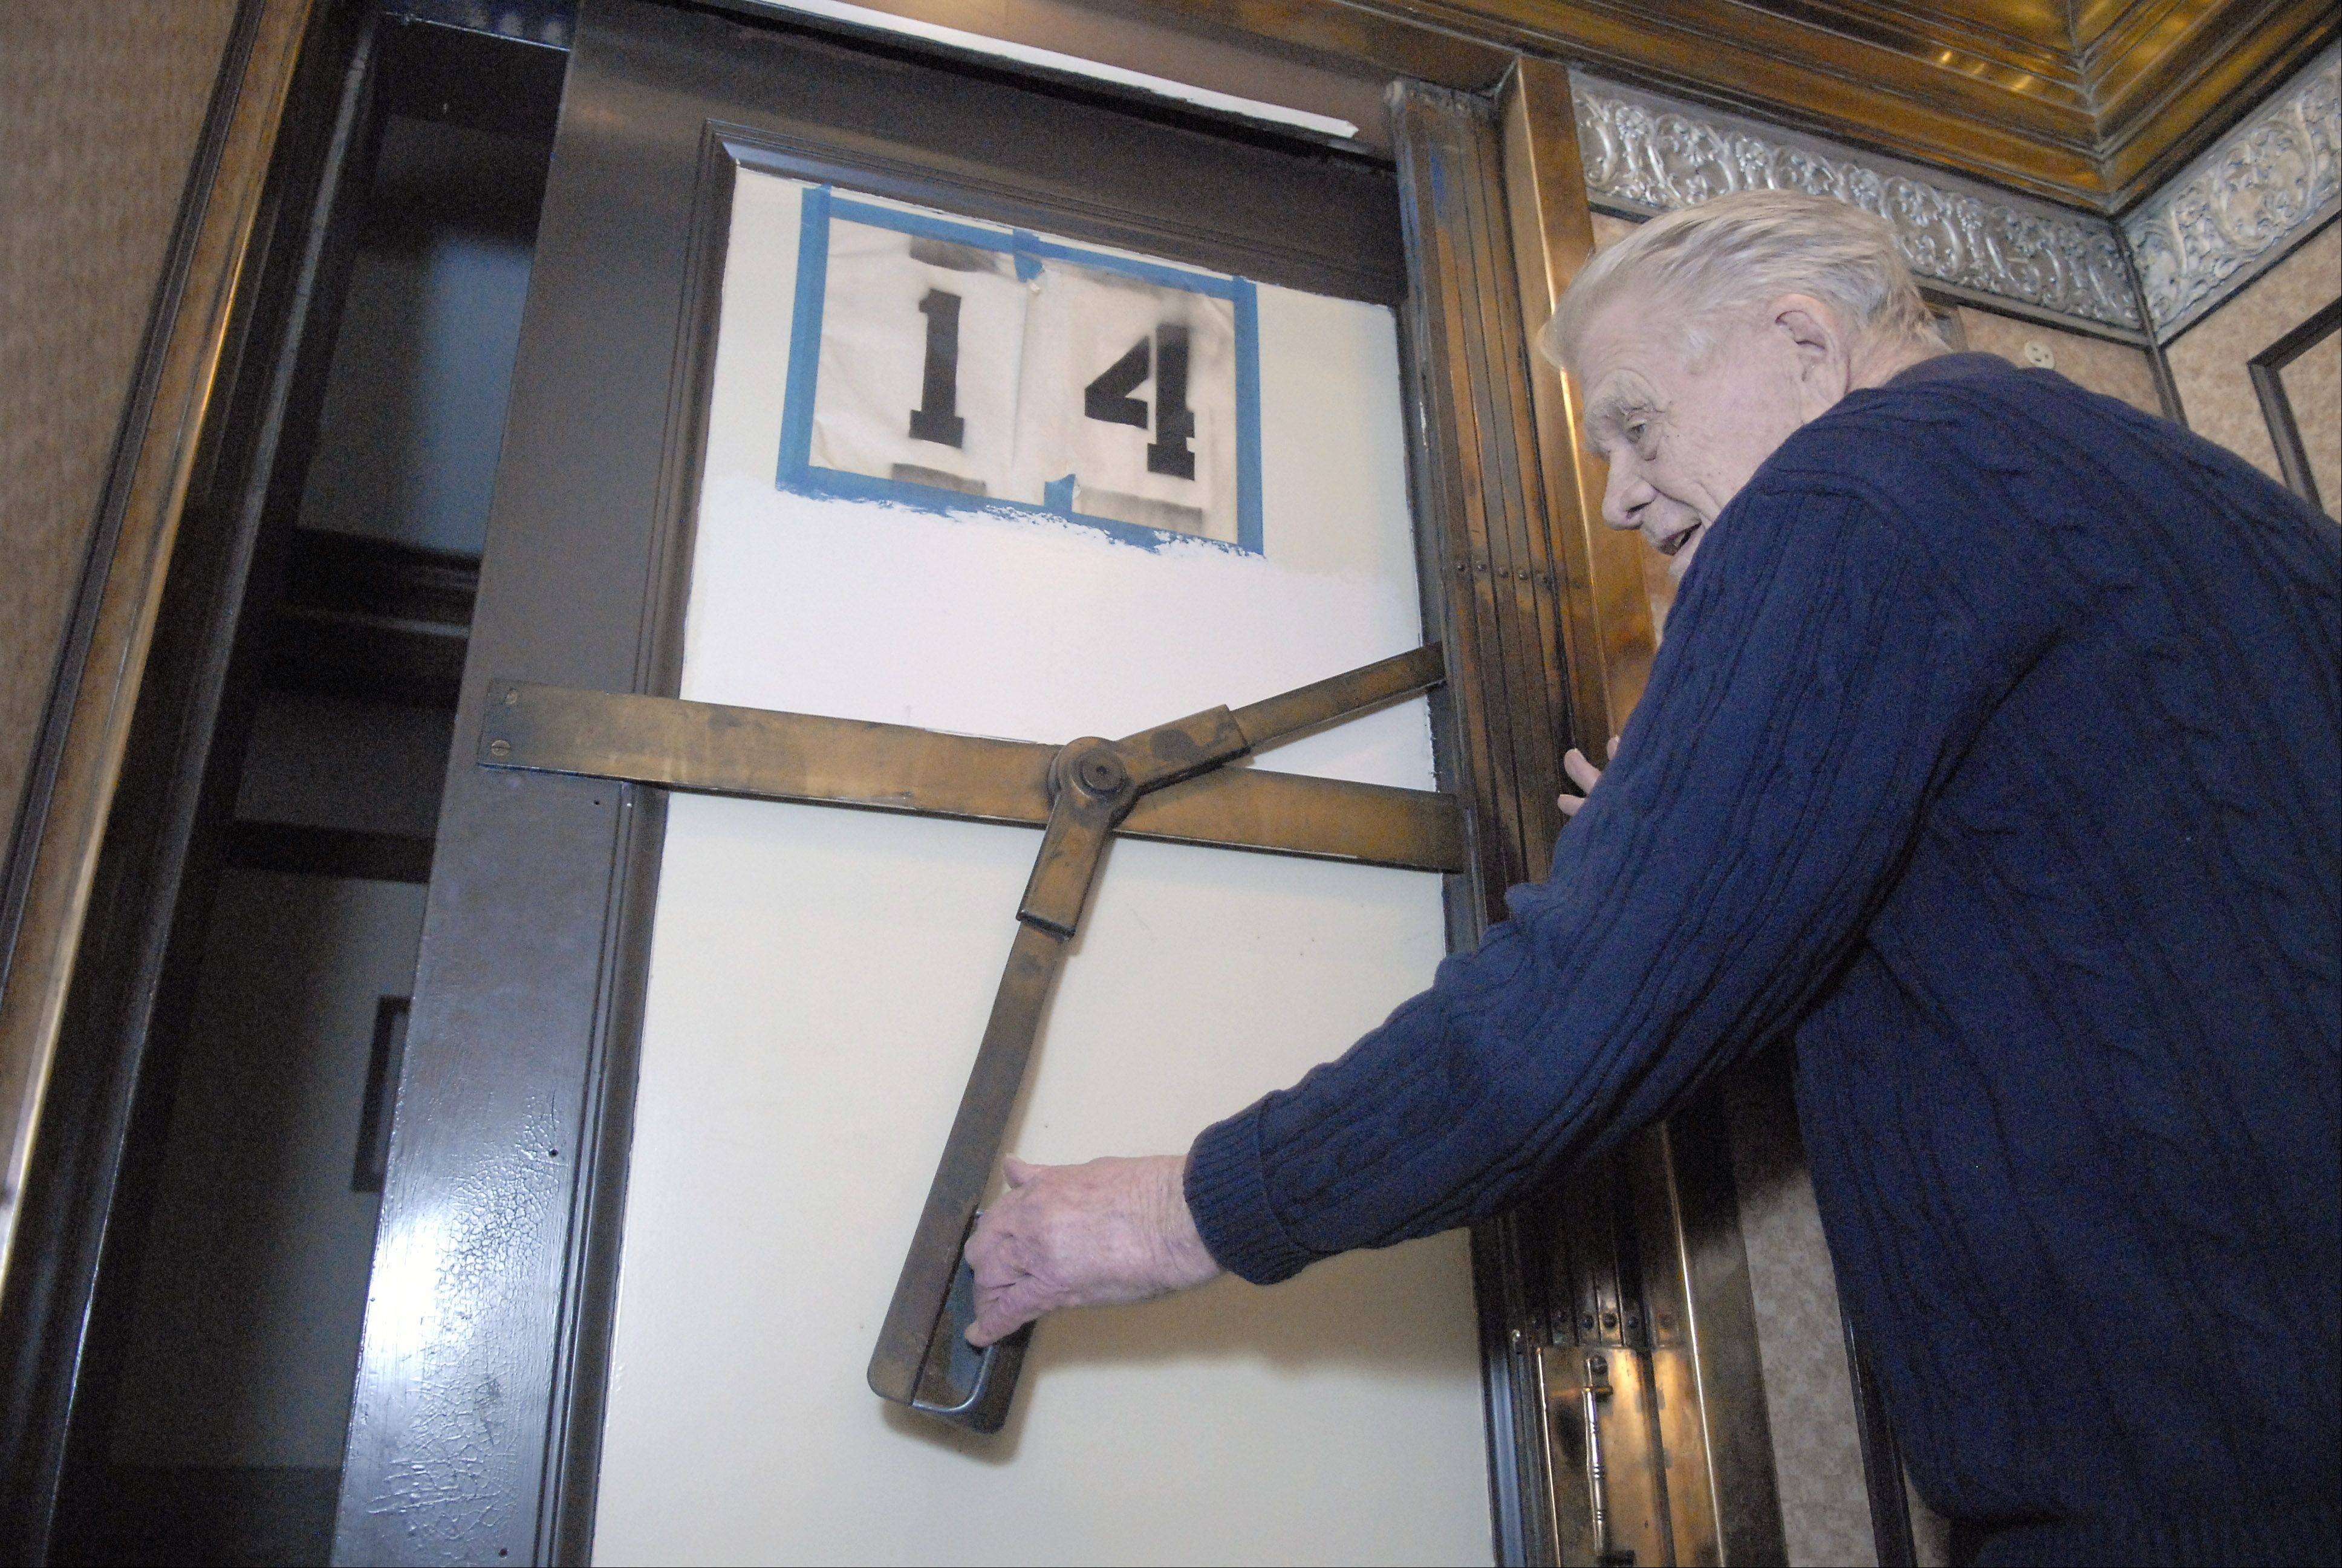 Allan L. Wudi is the morning elevator operator at the Elgin Tower Building. There is a gate and main door that has to be opened at each stop.